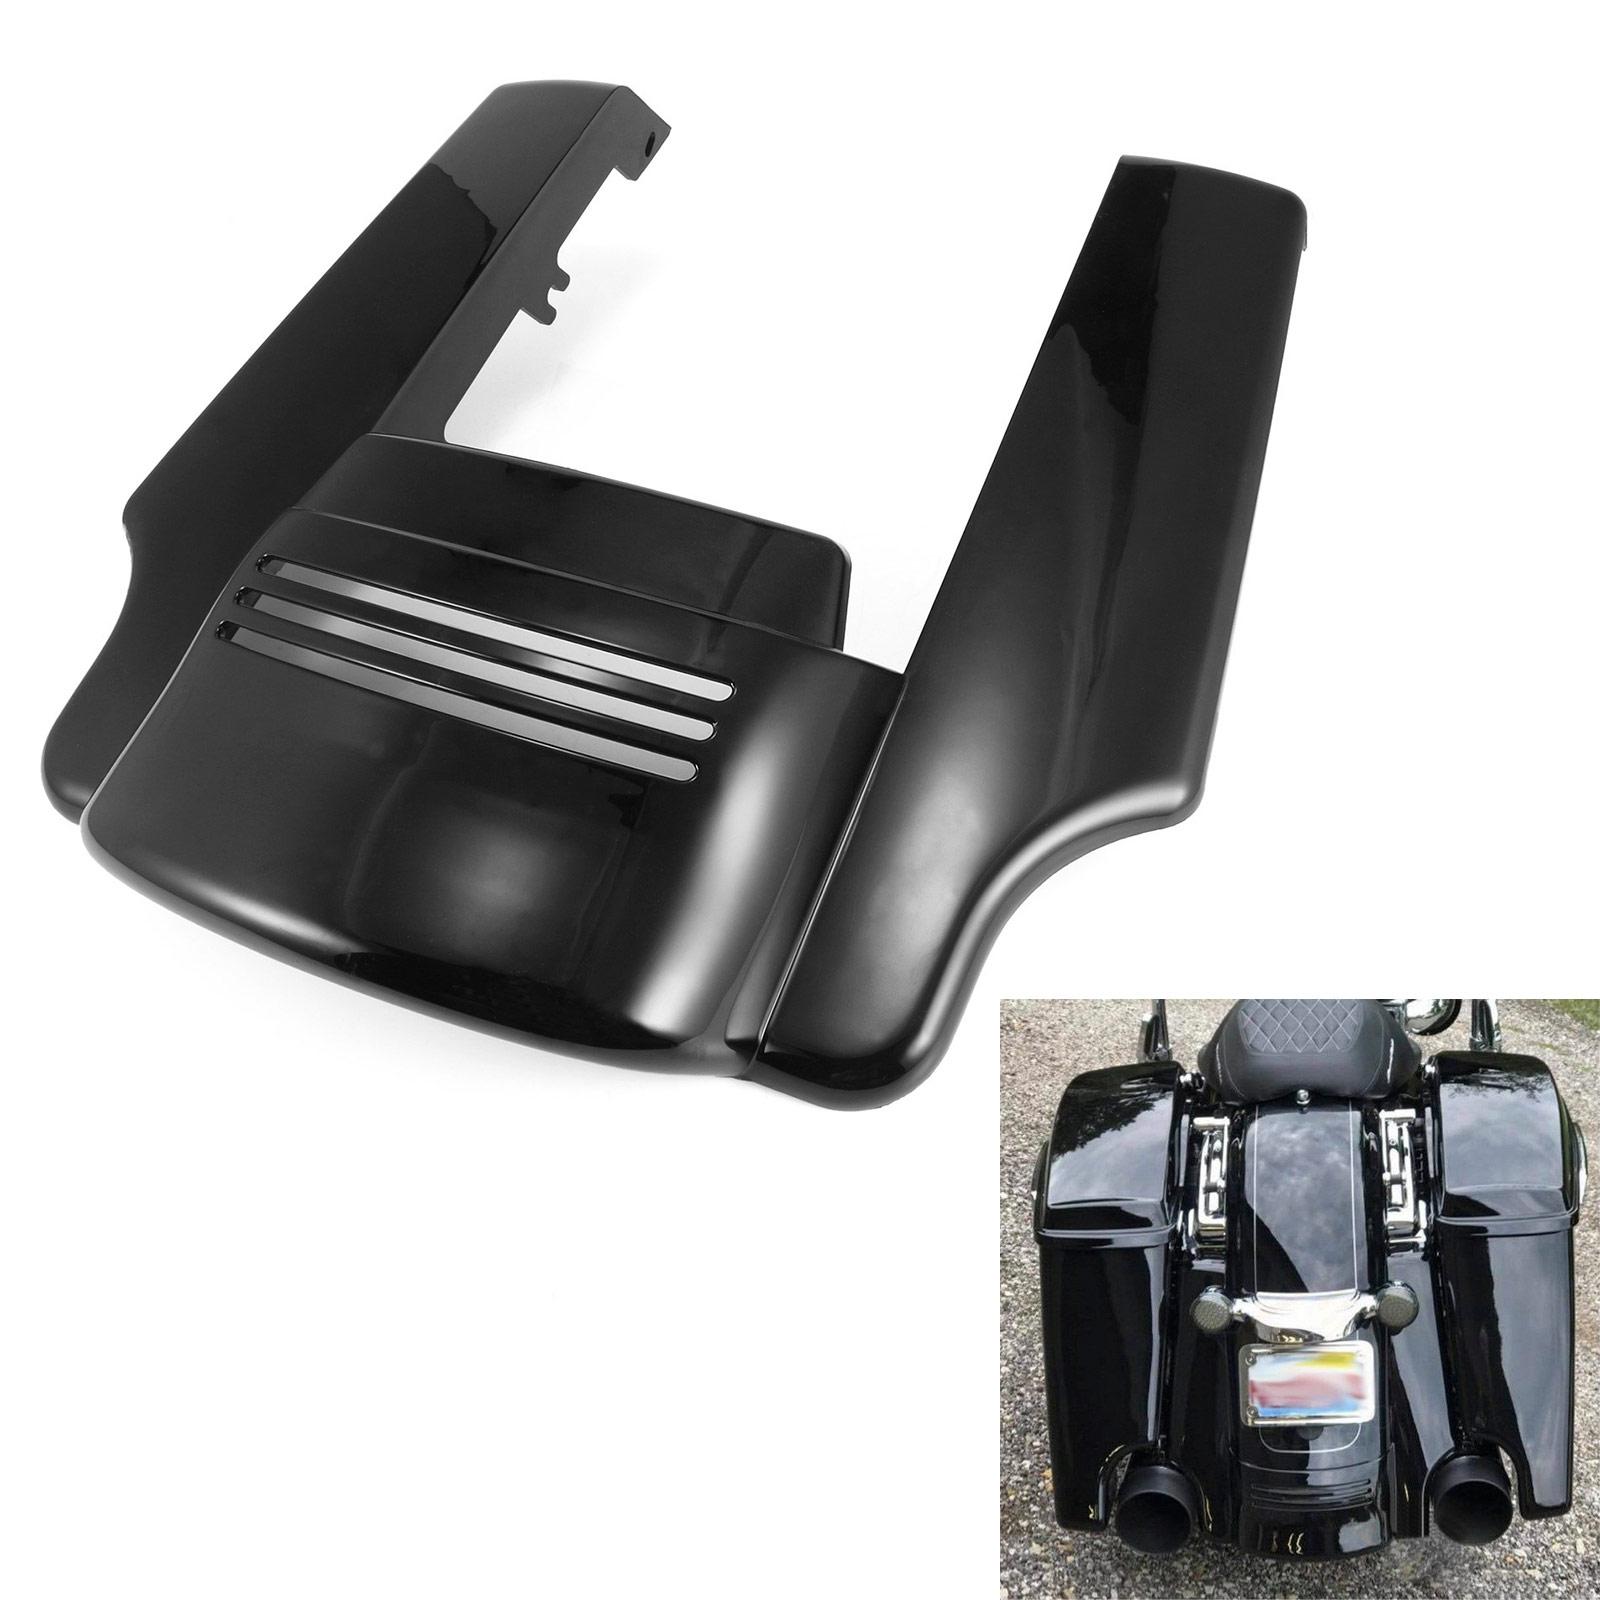 Motorcycle Mudguards 7 Rear Fender Extension Stretched Filler For Harley Electra Street Road Glide 2014 2015 2016 2017 5 gloss black rear fender extension stretched filler short for harley touring electra street glide road king 2014 2015 16 2017